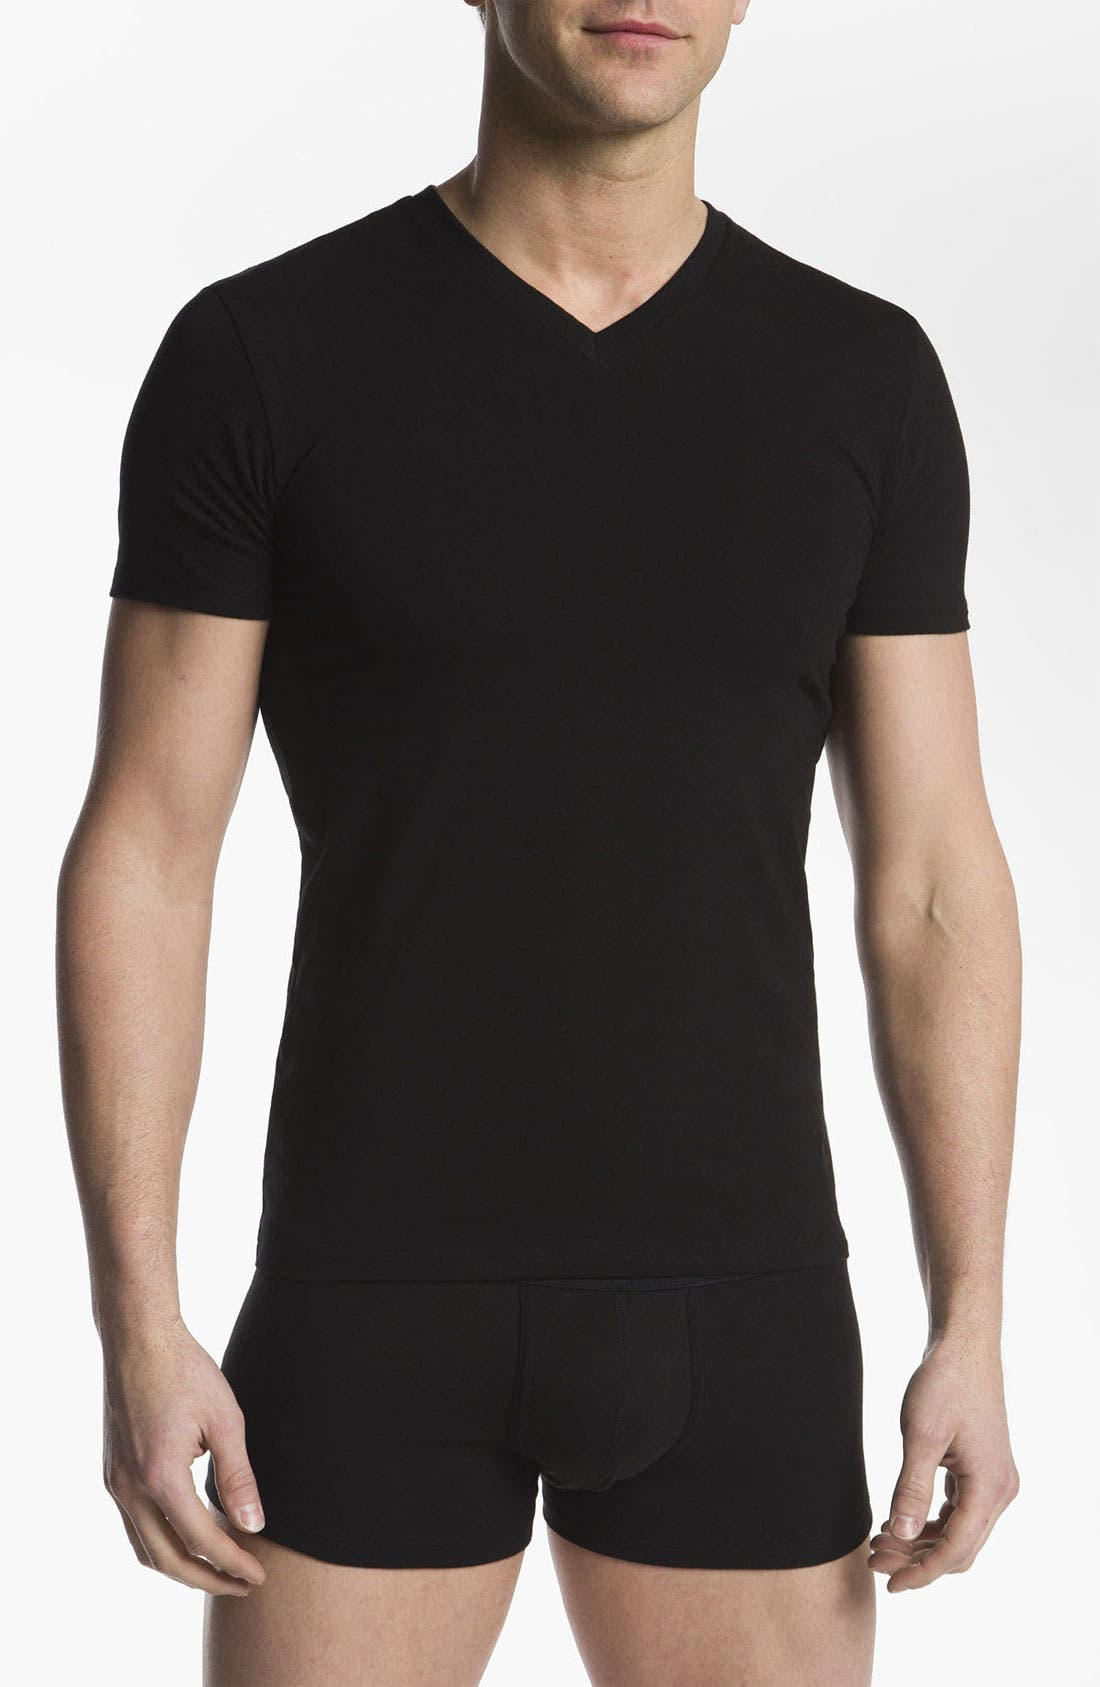 Alternate Image 1 Selected - Polo Ralph Lauren Stretch Cotton V-Neck T-Shirt (2-Pack)